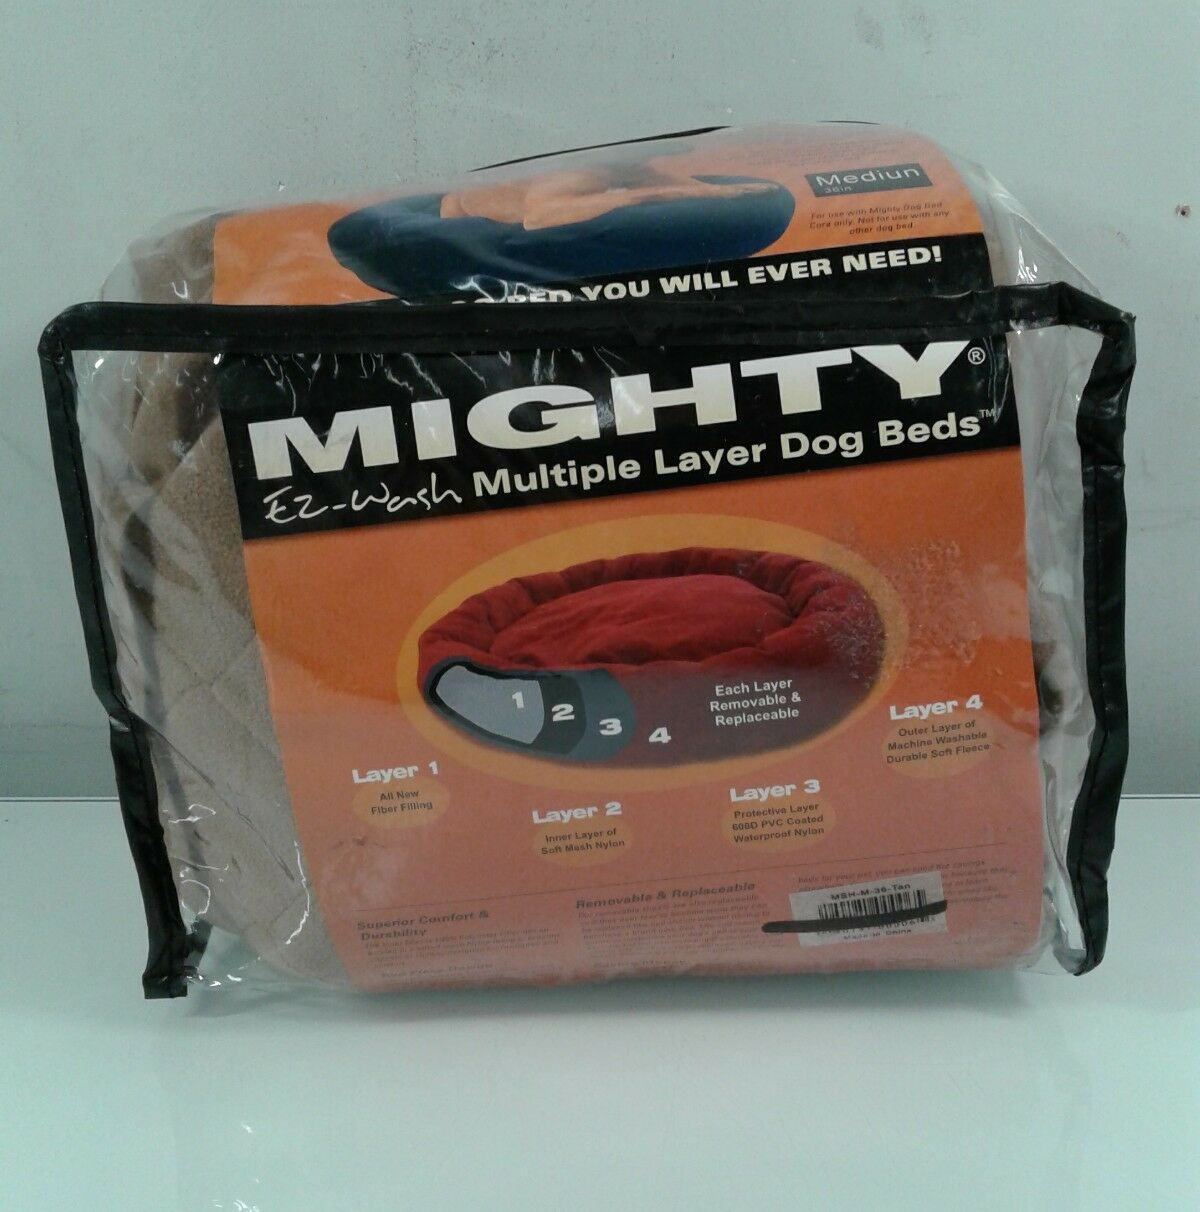 Mighty Dog Bed Sheet Removable Replaceable Zippered Soft Fleece Sheets Ez Wash